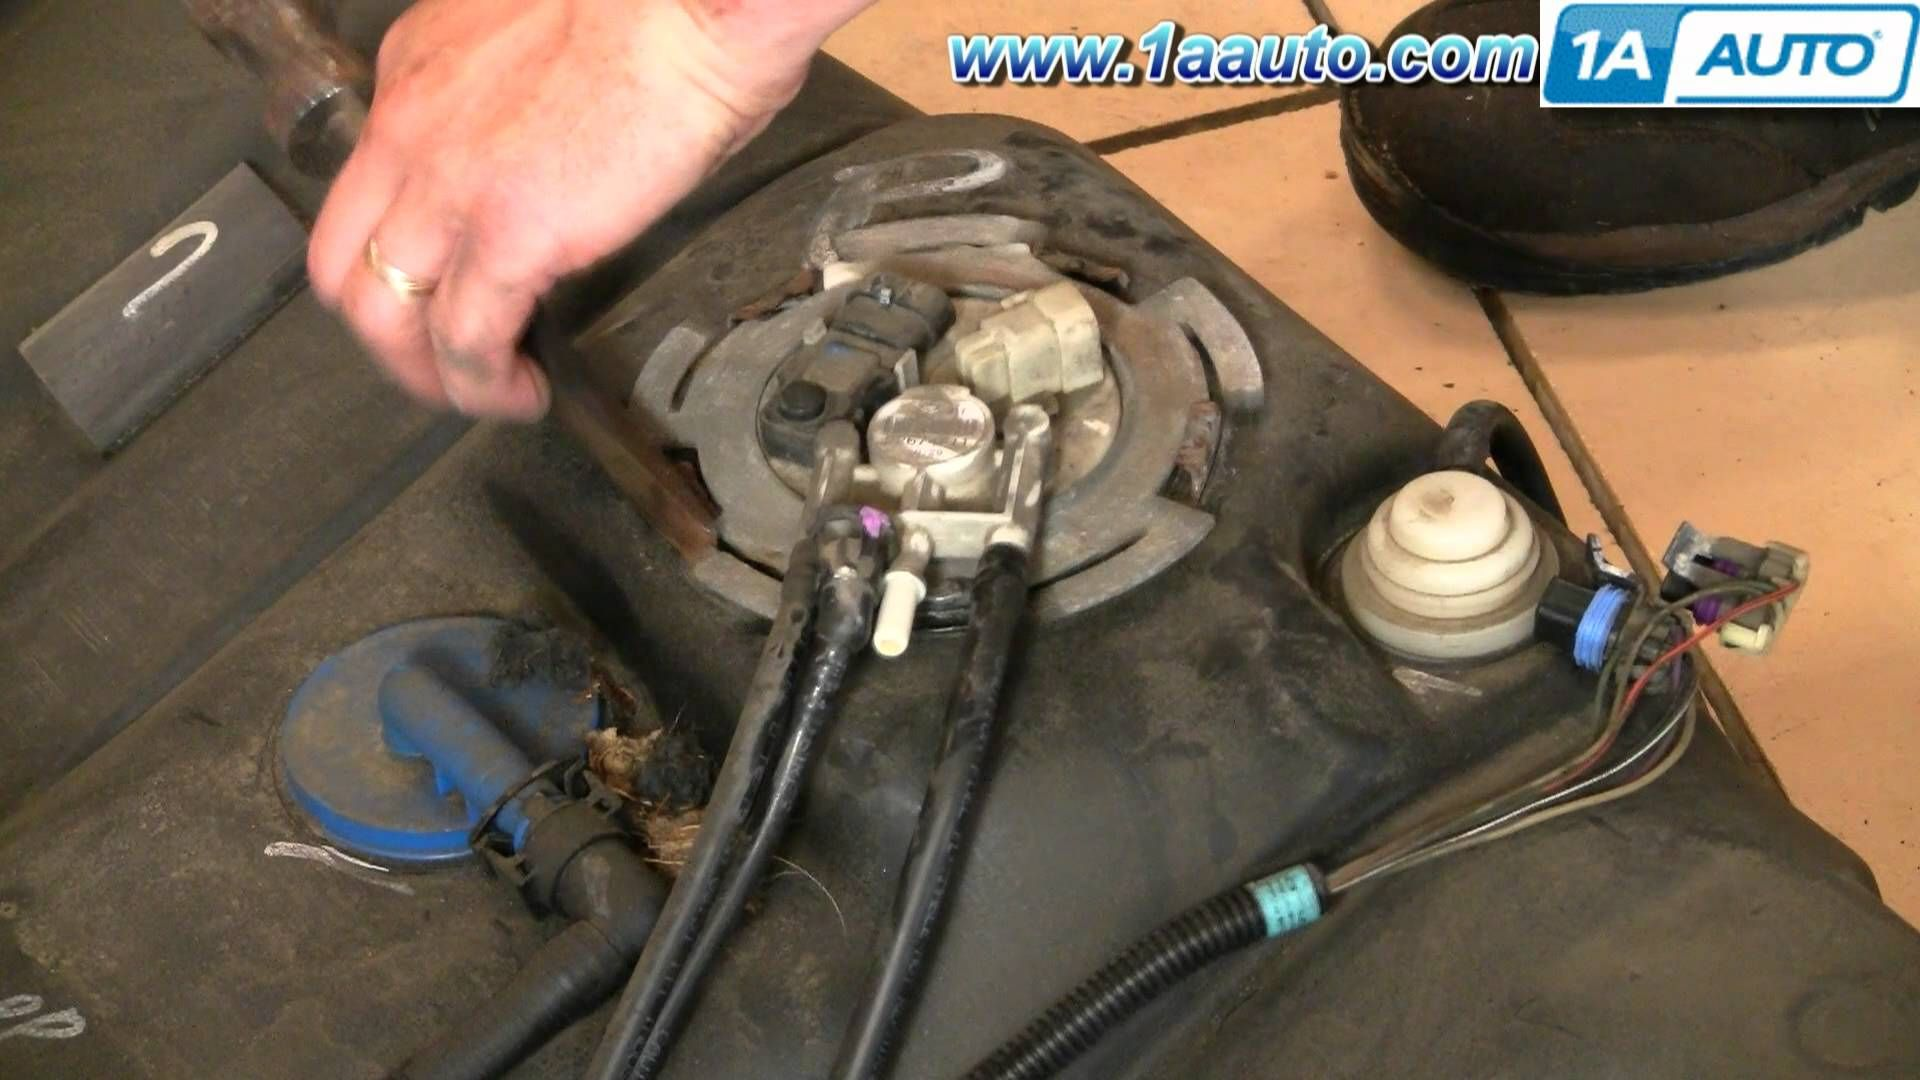 [SCHEMATICS_4LK]  cool How To Install Replace Fuel Pump and Sending Unit Chevy Malibu 99-03  1AAuto.com | Chevy malibu, Chevy, Car care | 2007 Chevy Malibu Fuel System Electrical Wiring |  | Pinterest